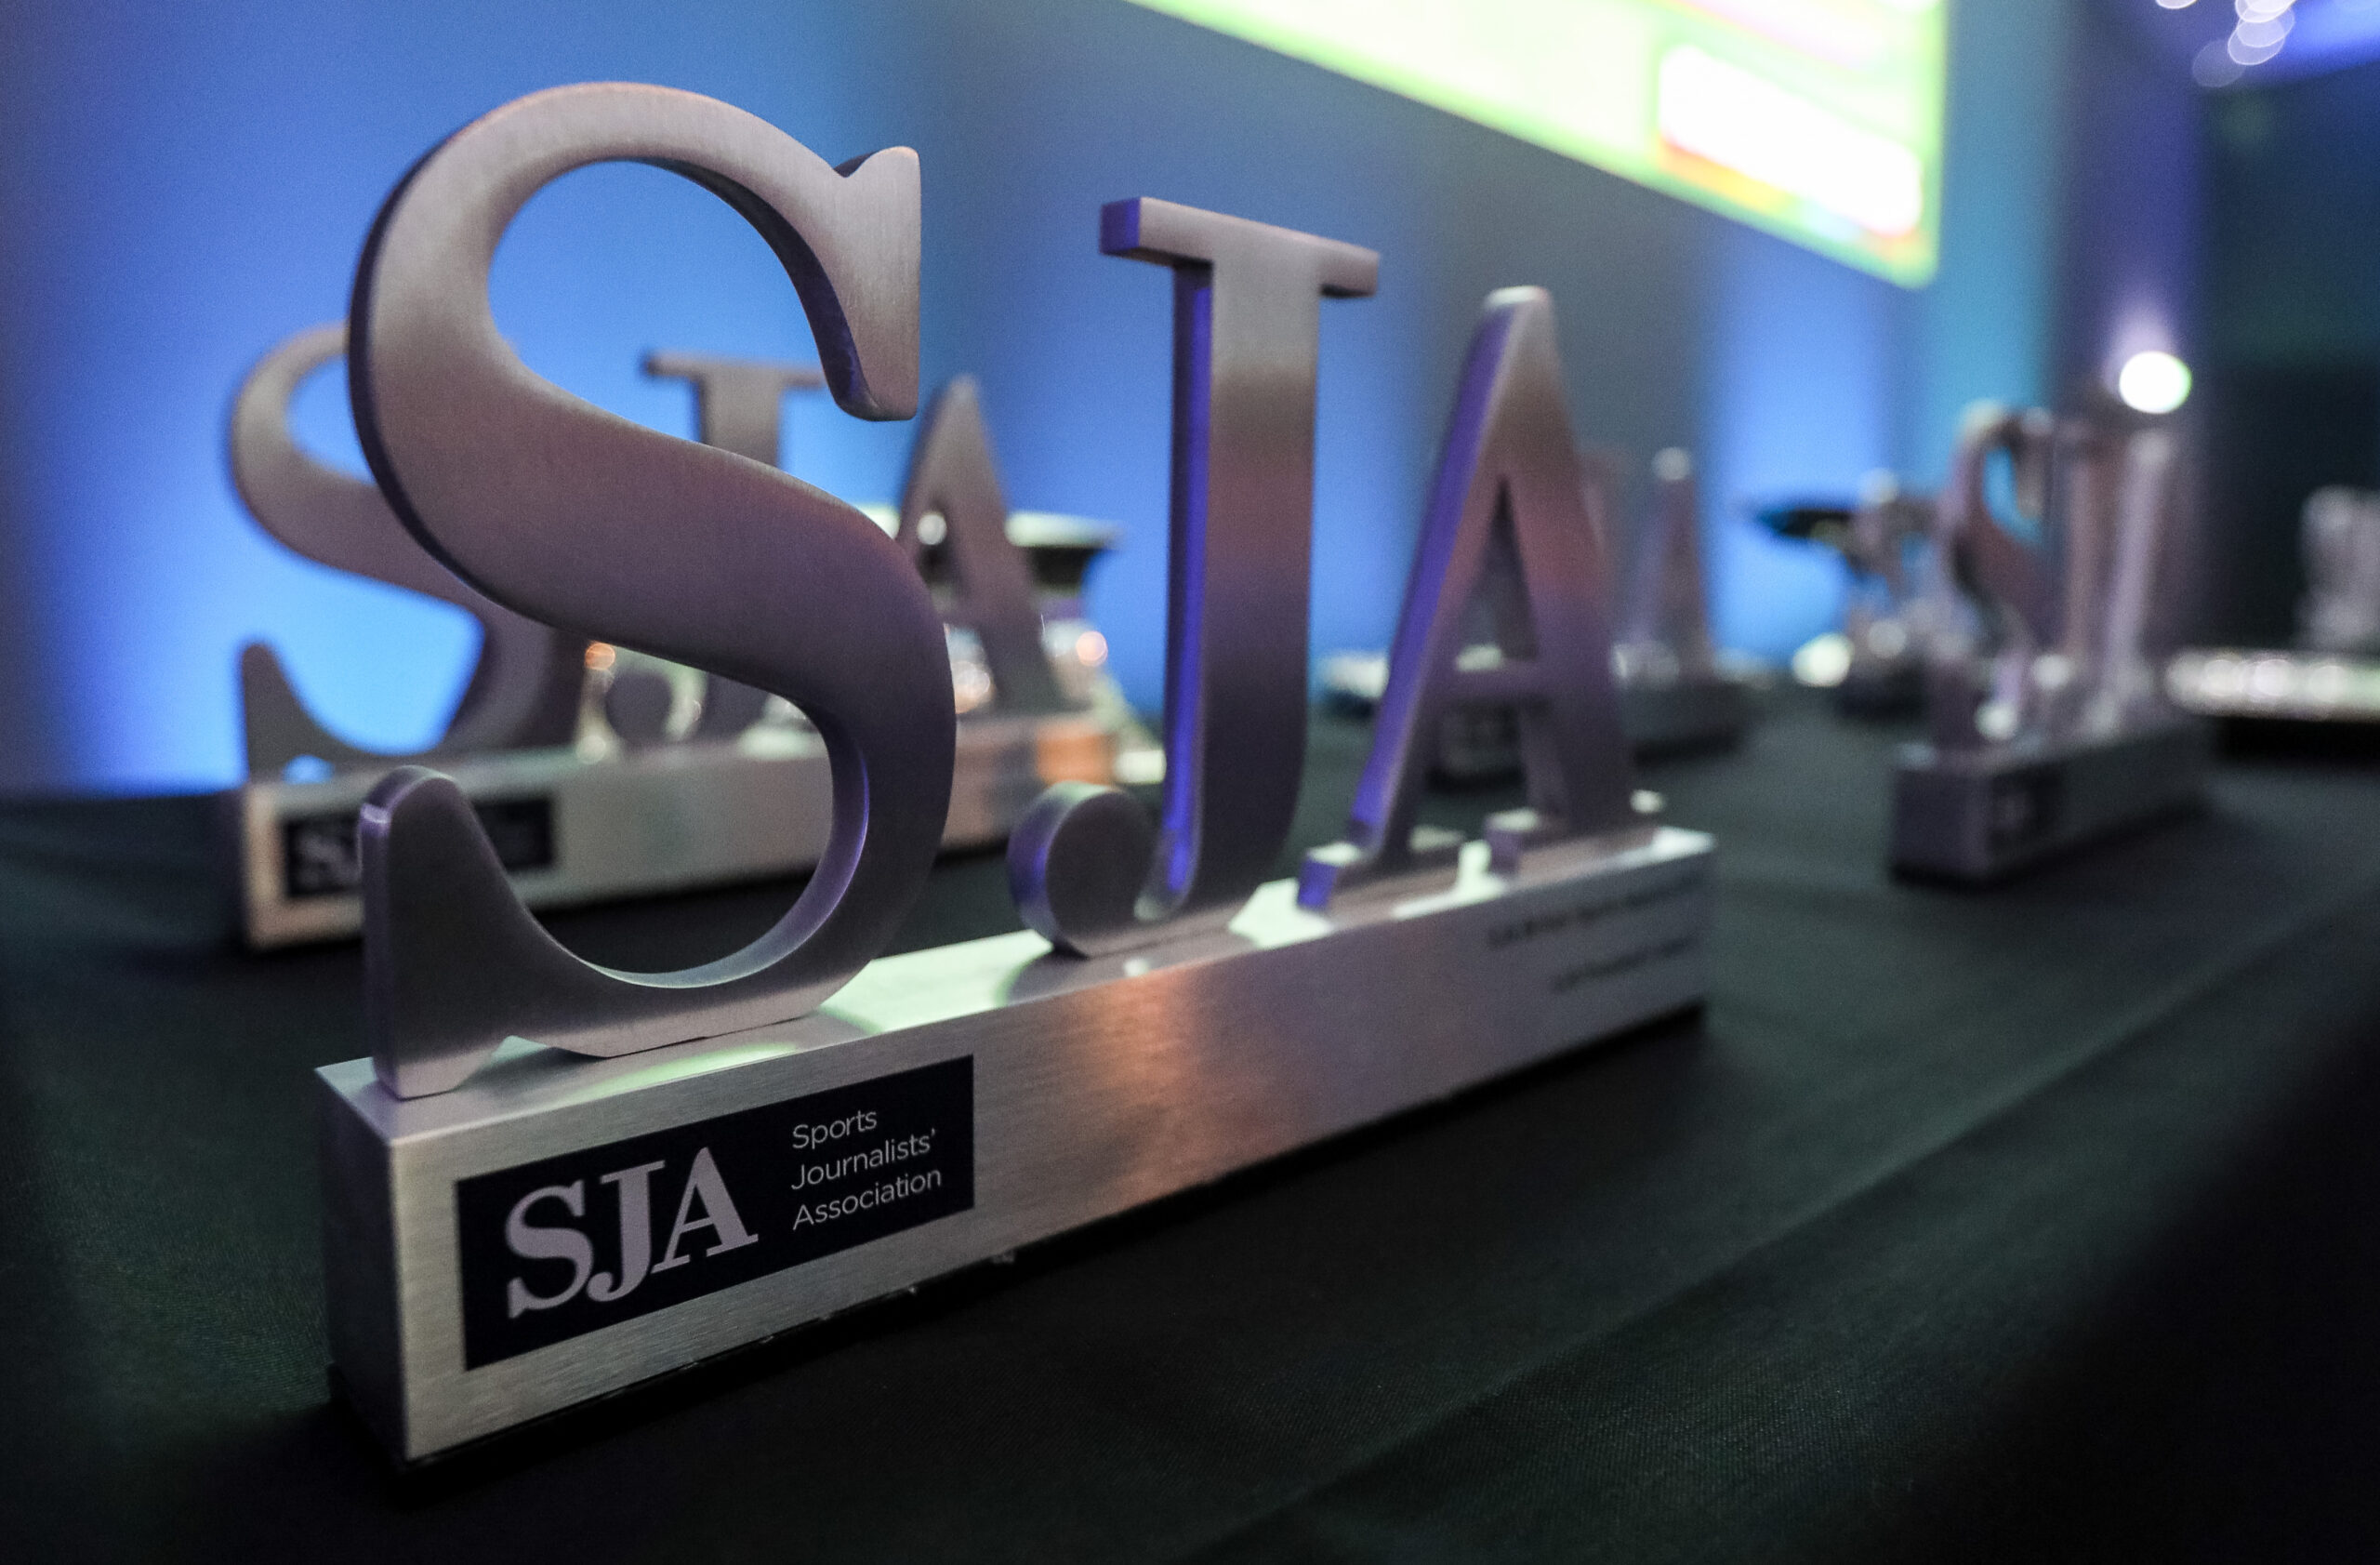 Entries open for 2020 SJA British Sports Journalism Awards